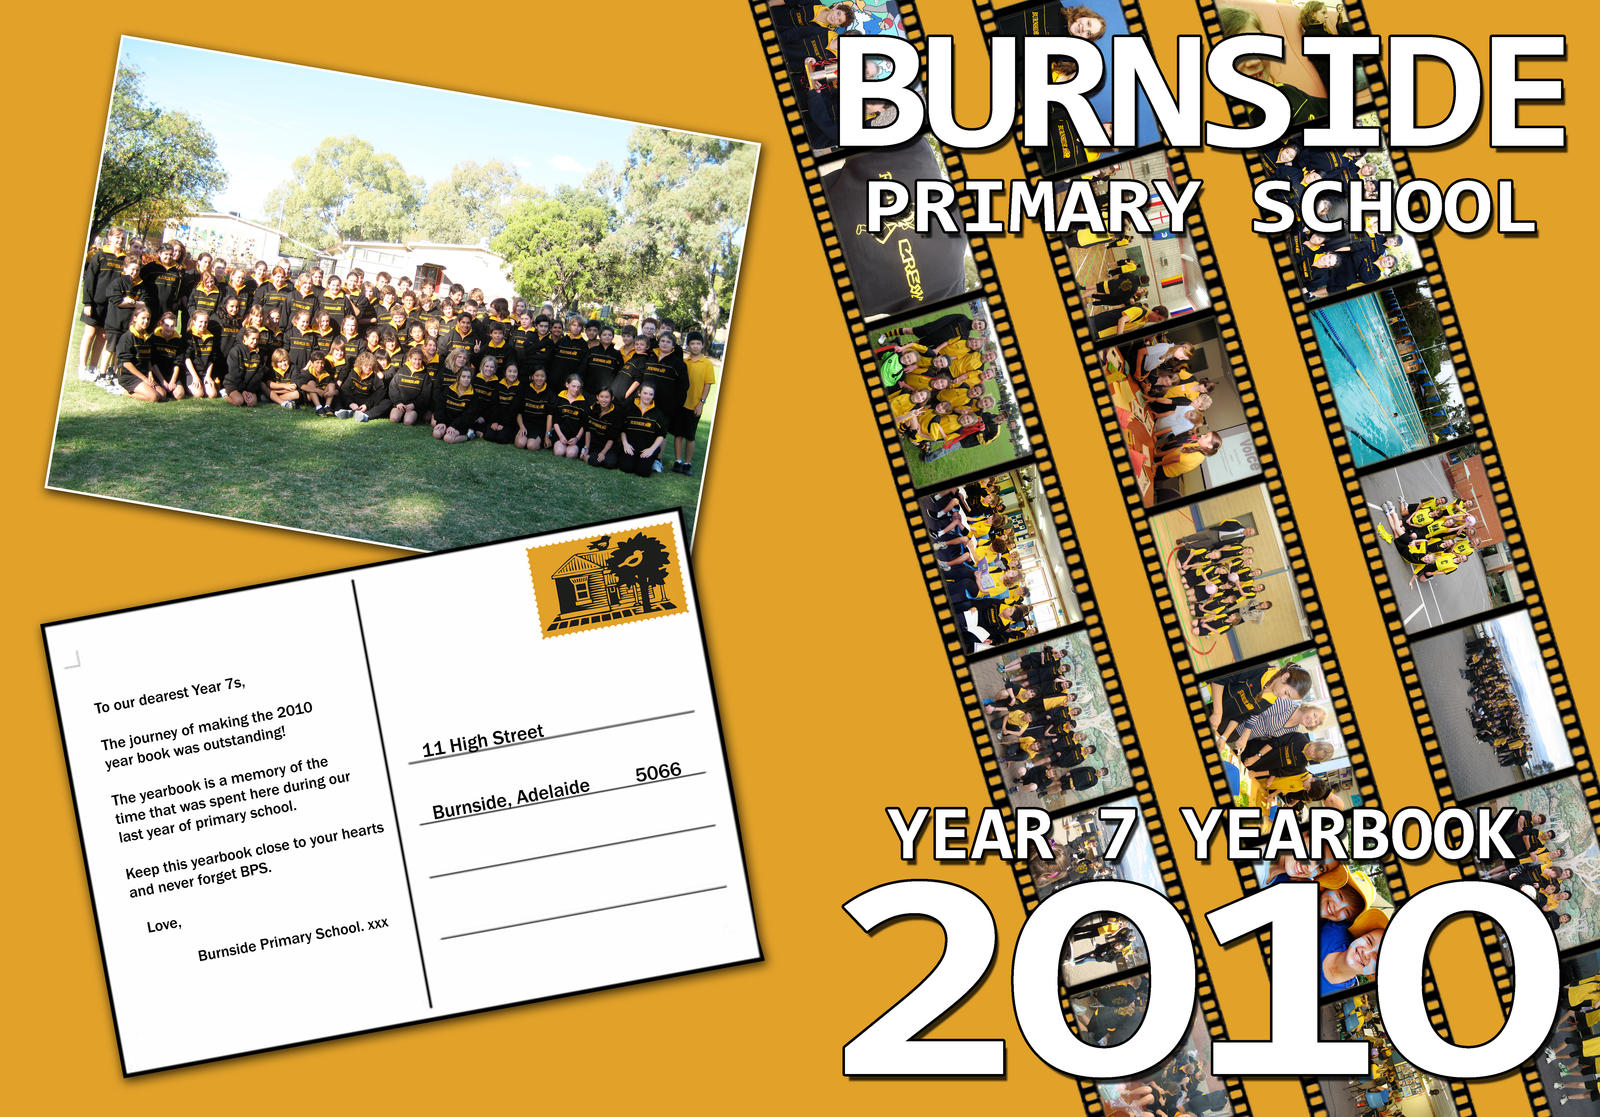 School Yearbook Cover Design : Bps yearbook cover by lordwhiteside on deviantart